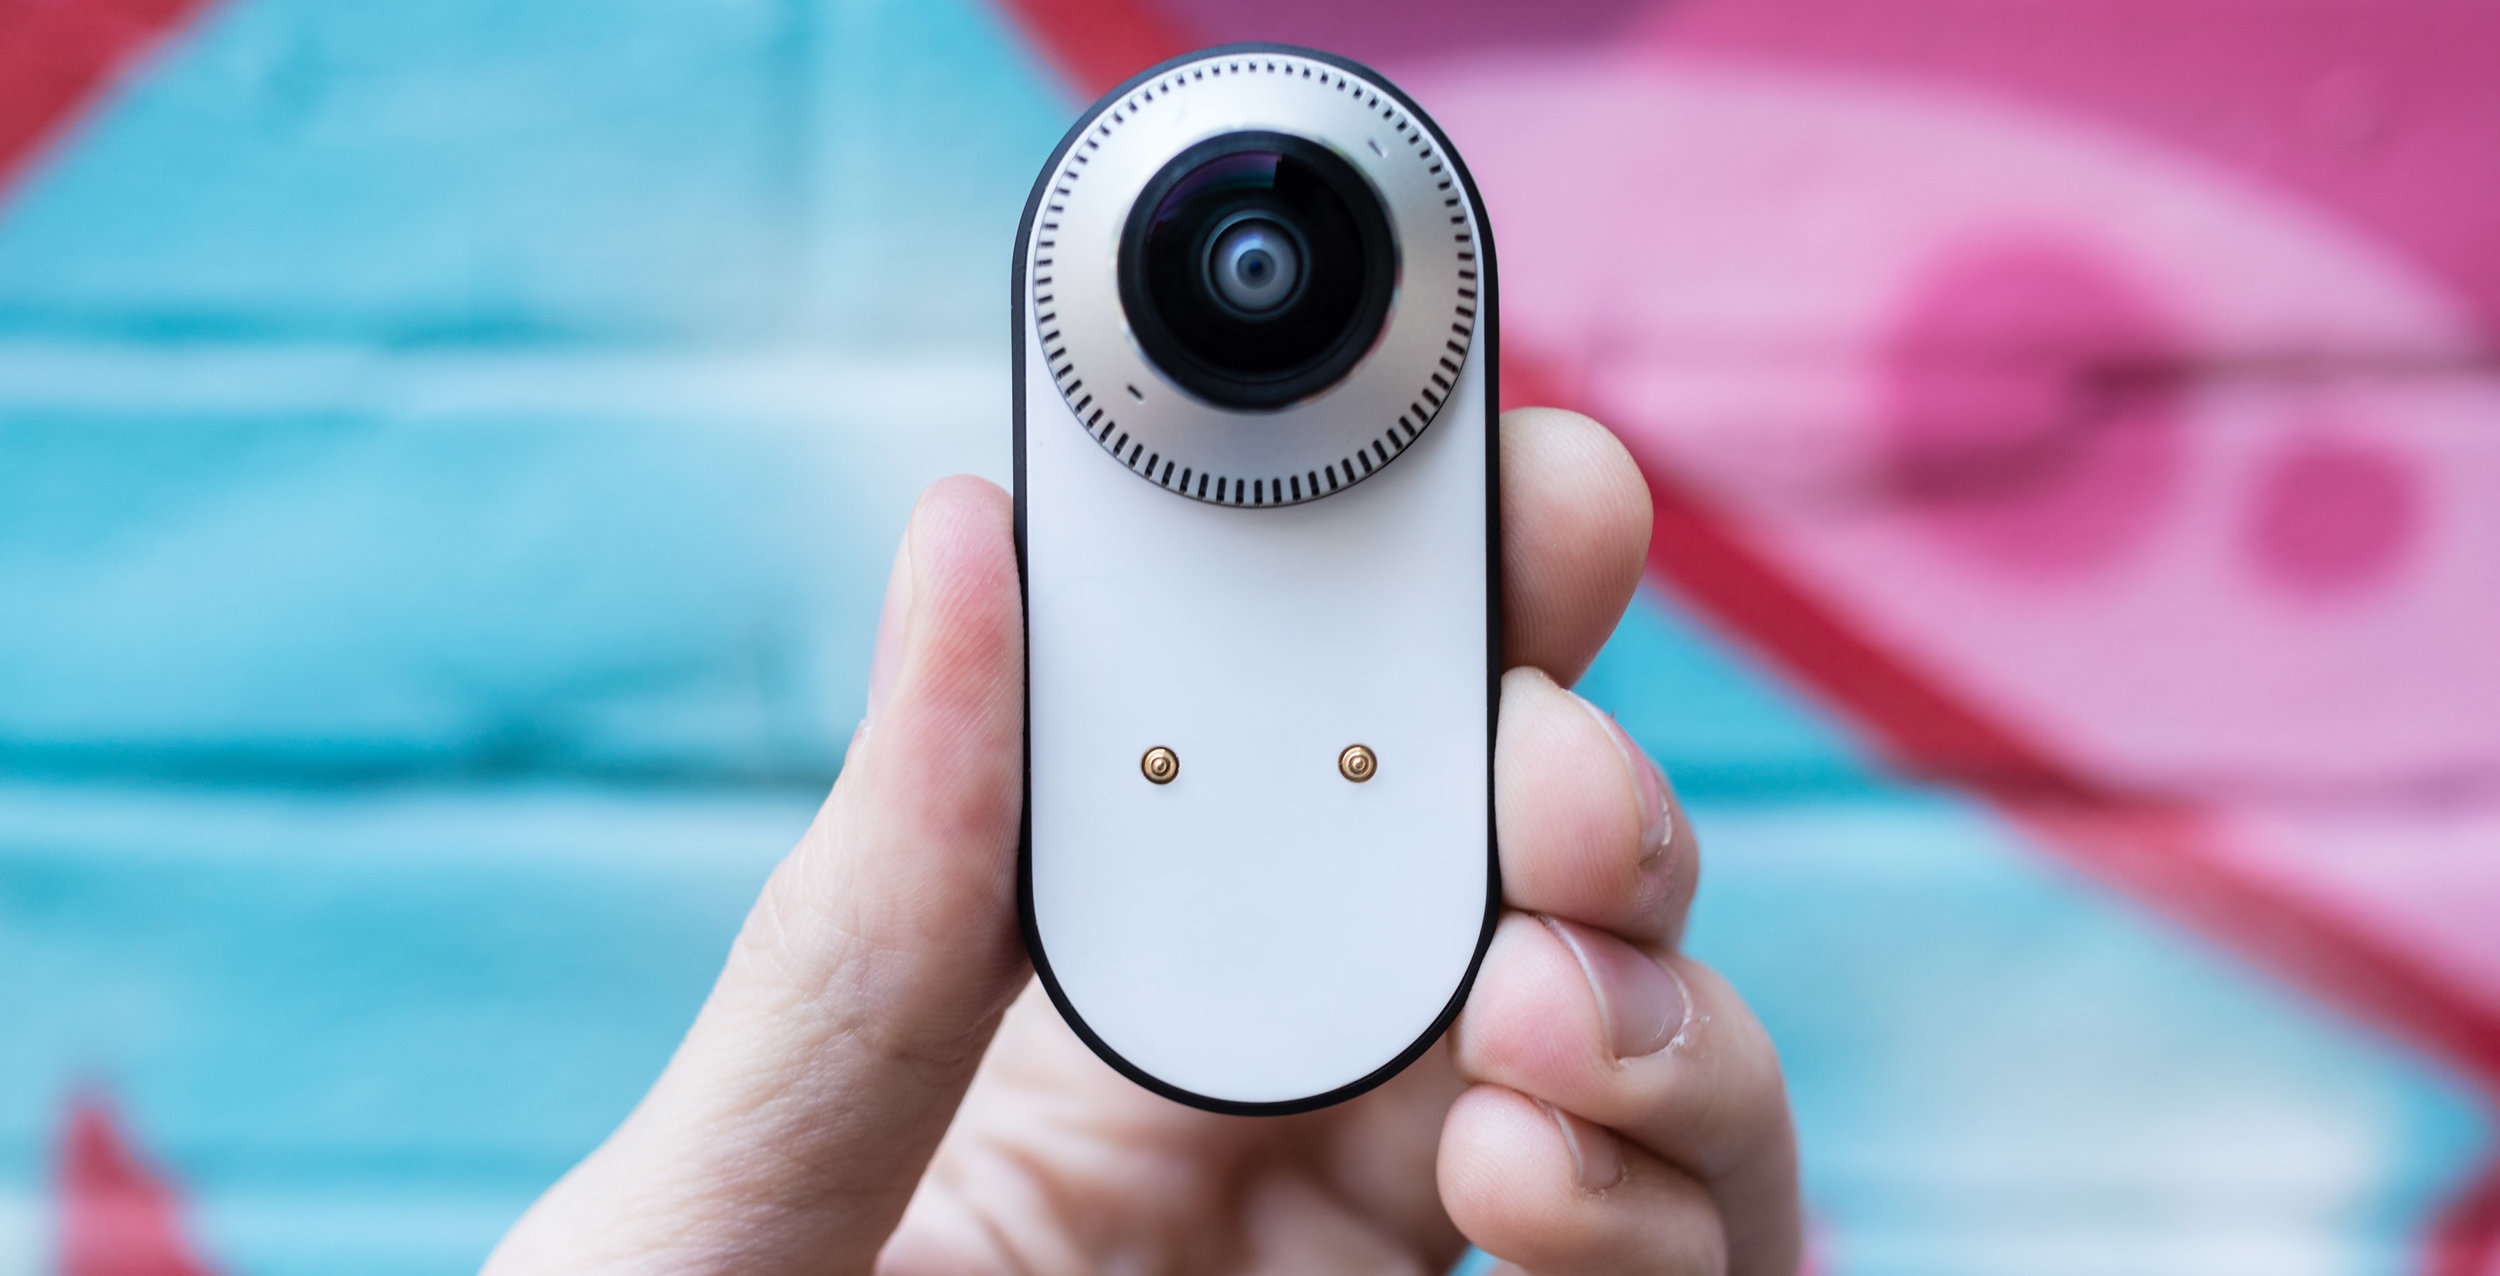 essential-360-camera-header.jpg